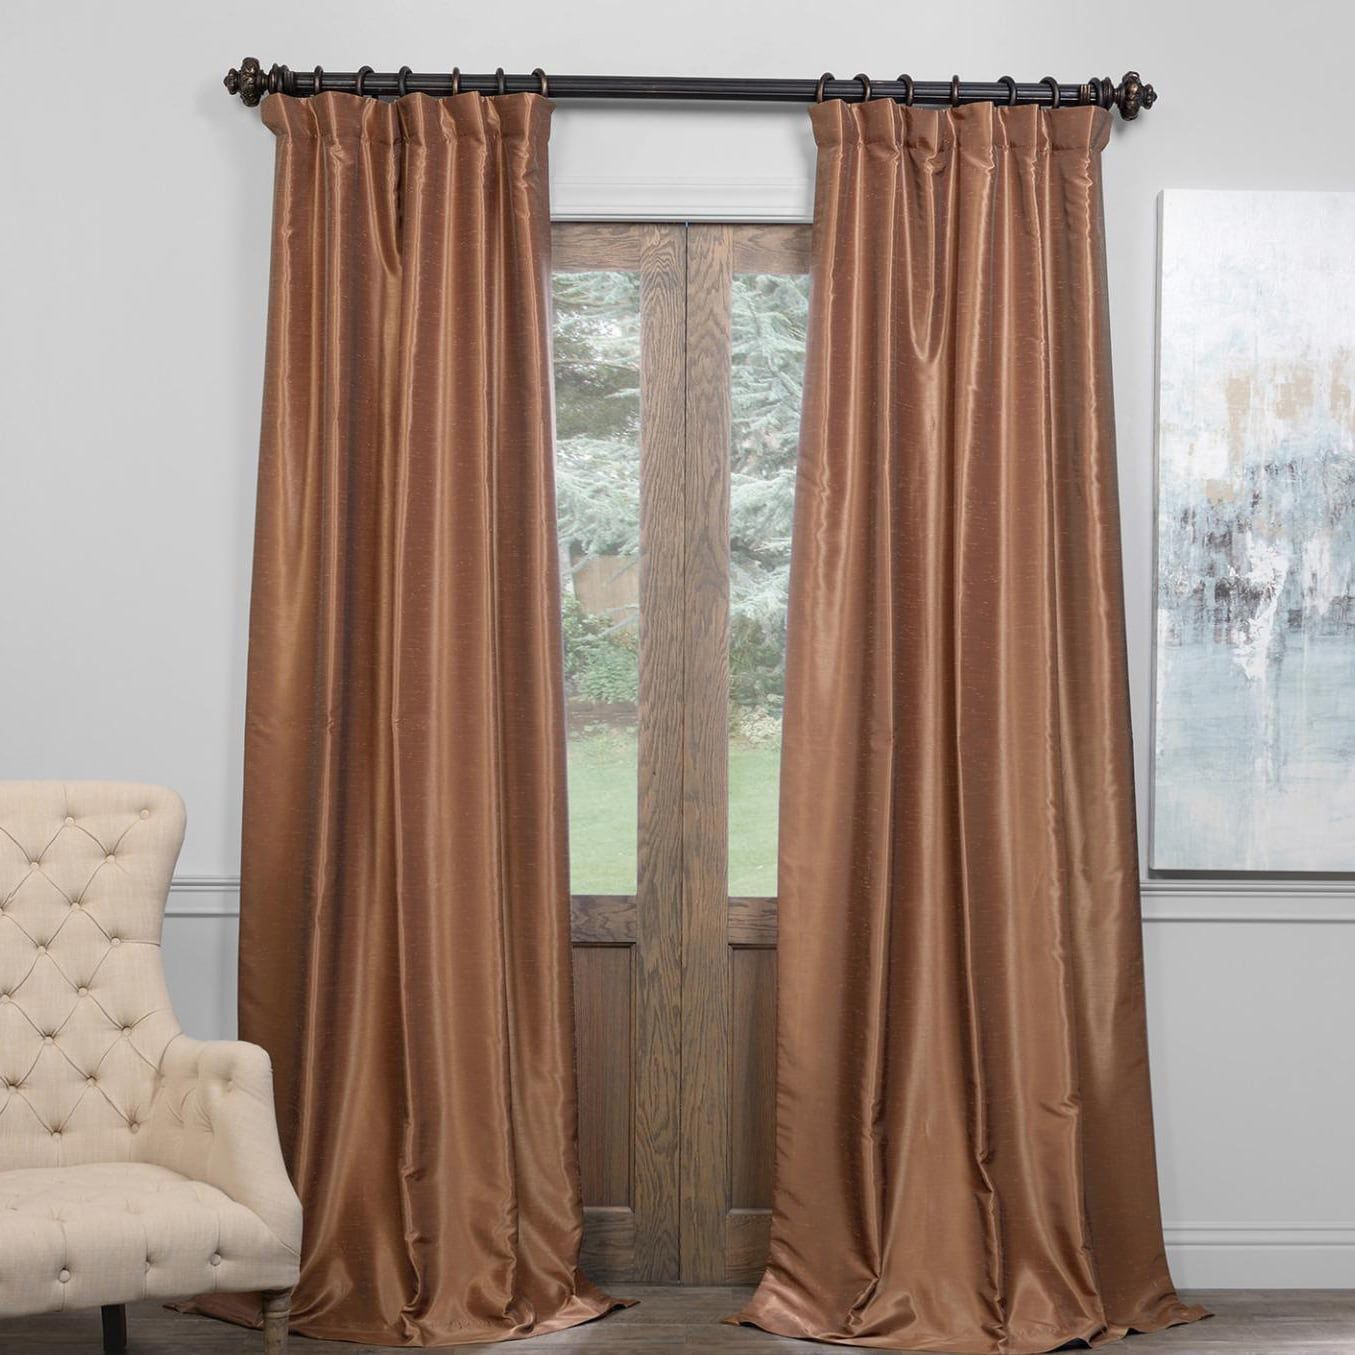 Exclusive Fabrics True Blackout Vintage Textured Faux Pertaining To Storm Grey Vintage Faux Textured Dupioni Single Silk Curtain Panels (View 20 of 30)